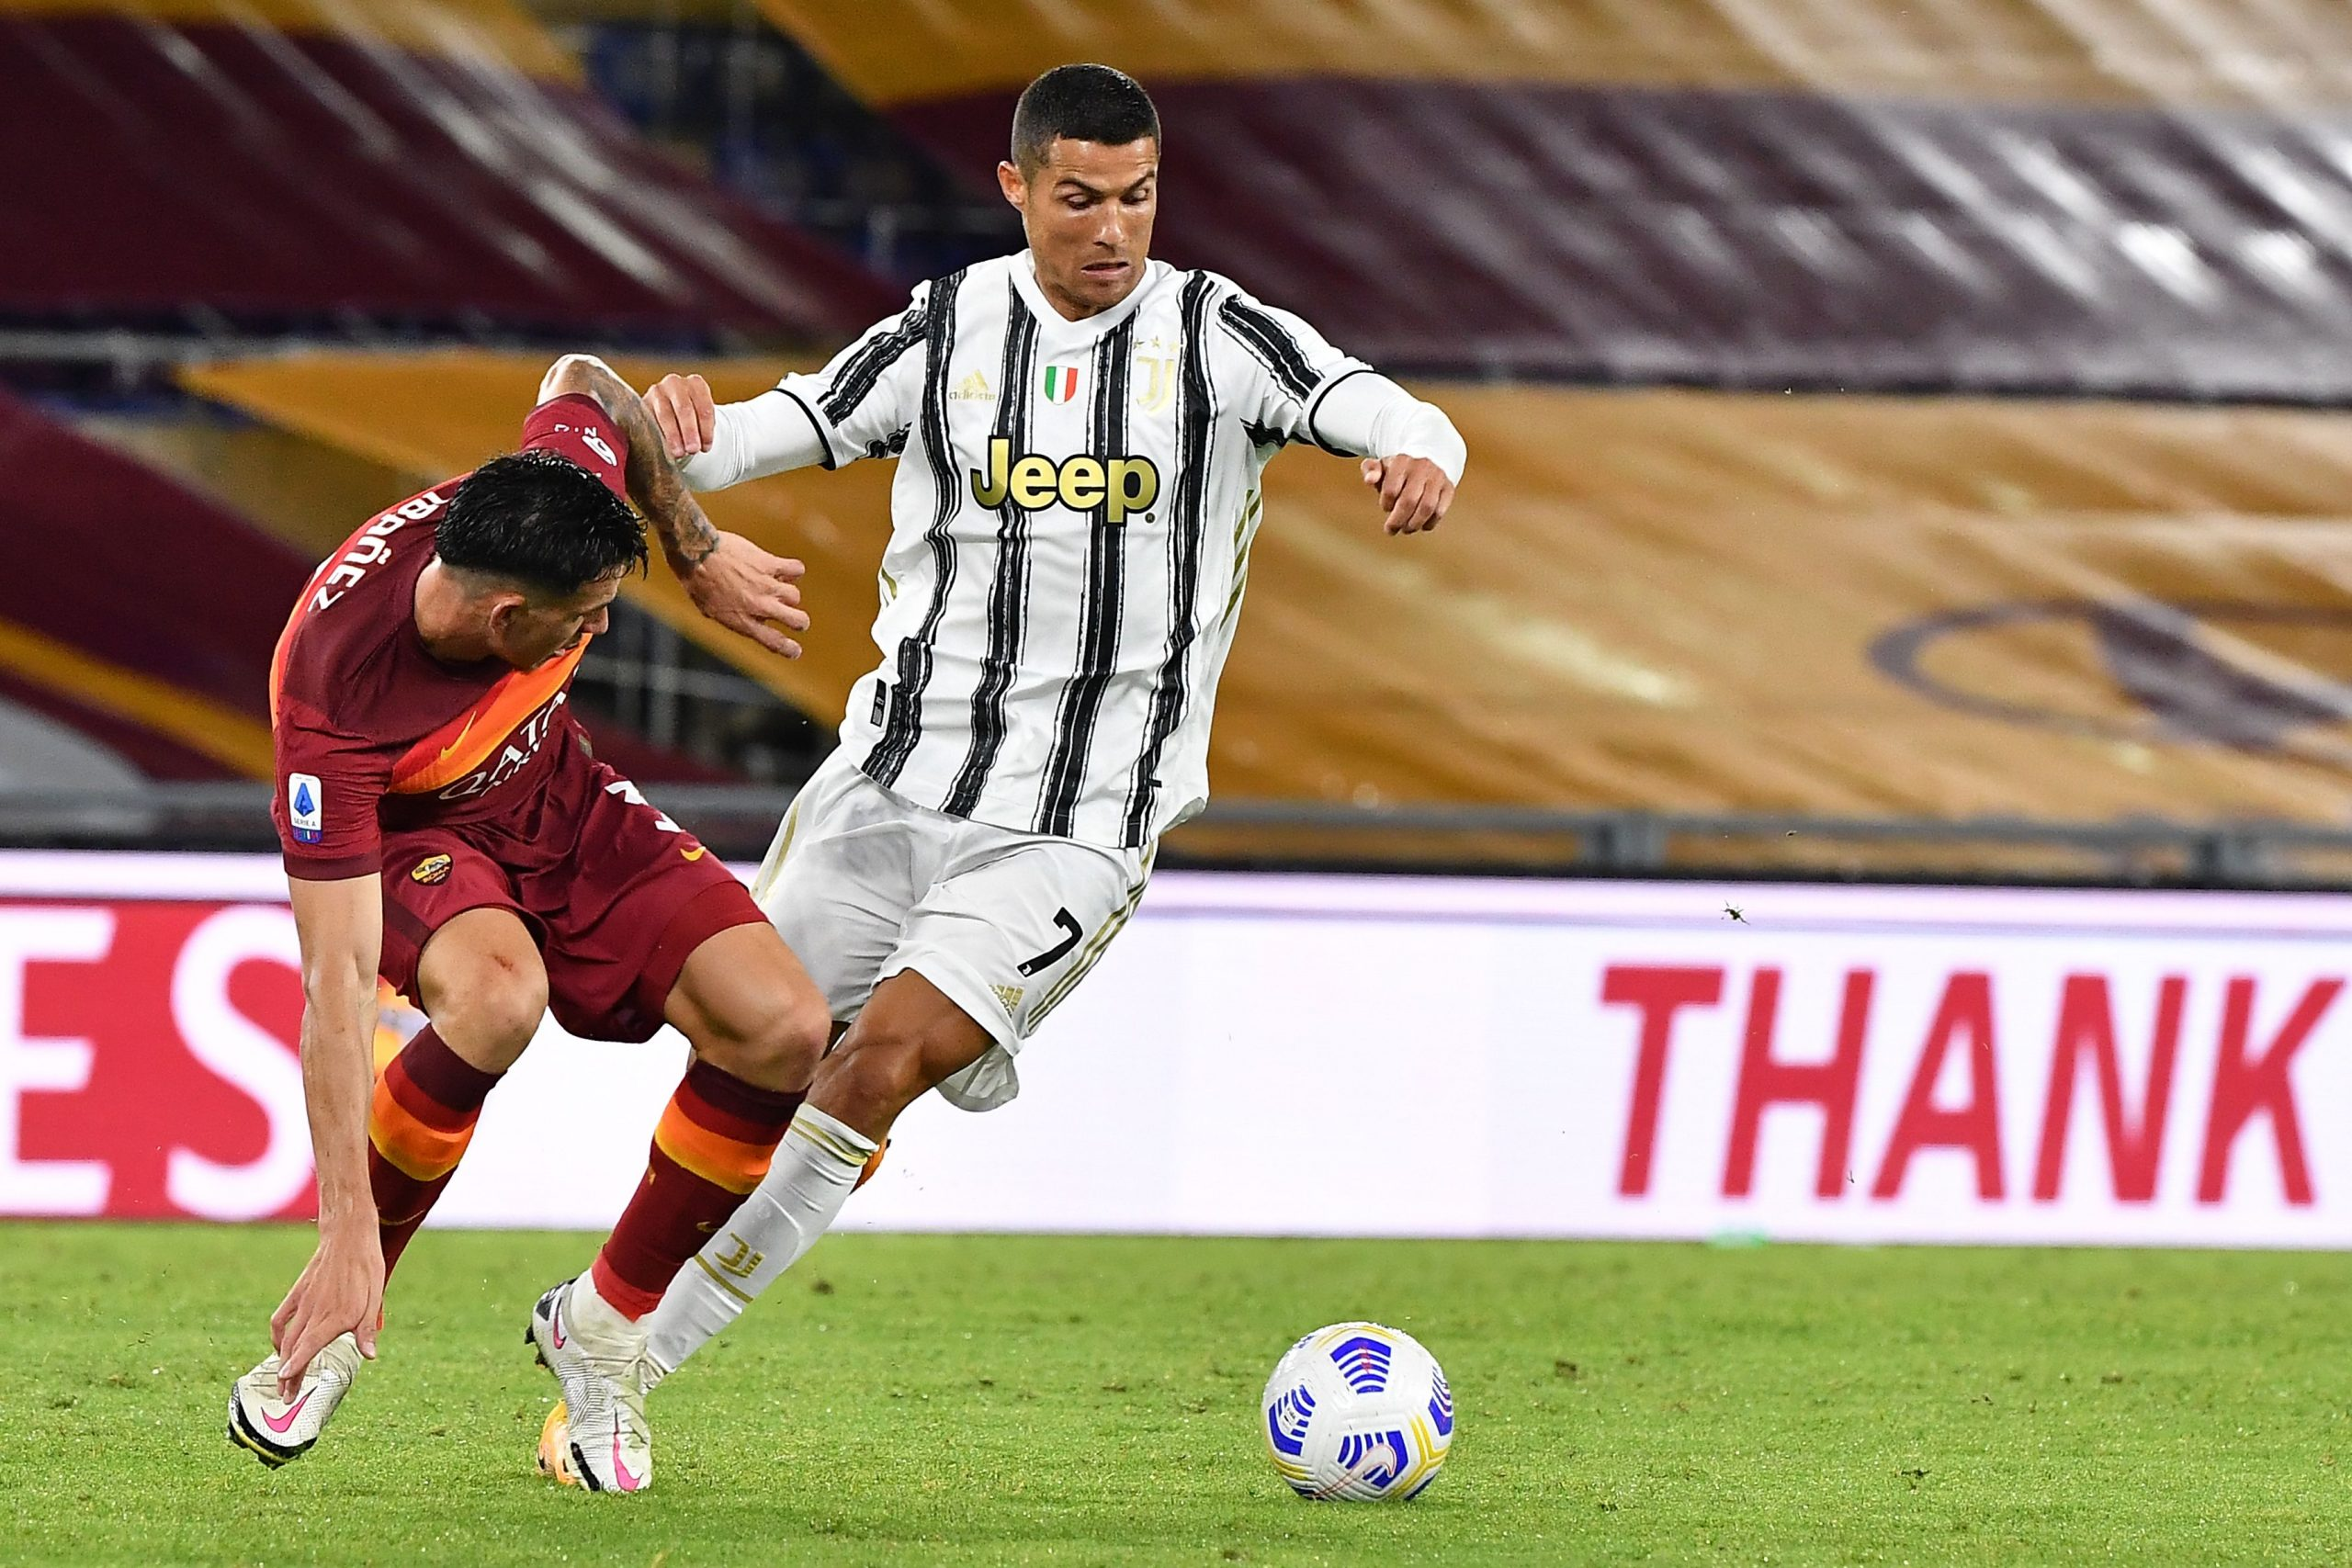 Roger Ibanez in action against Juventus' Cristiano Ronaldo. (GETTY Images)